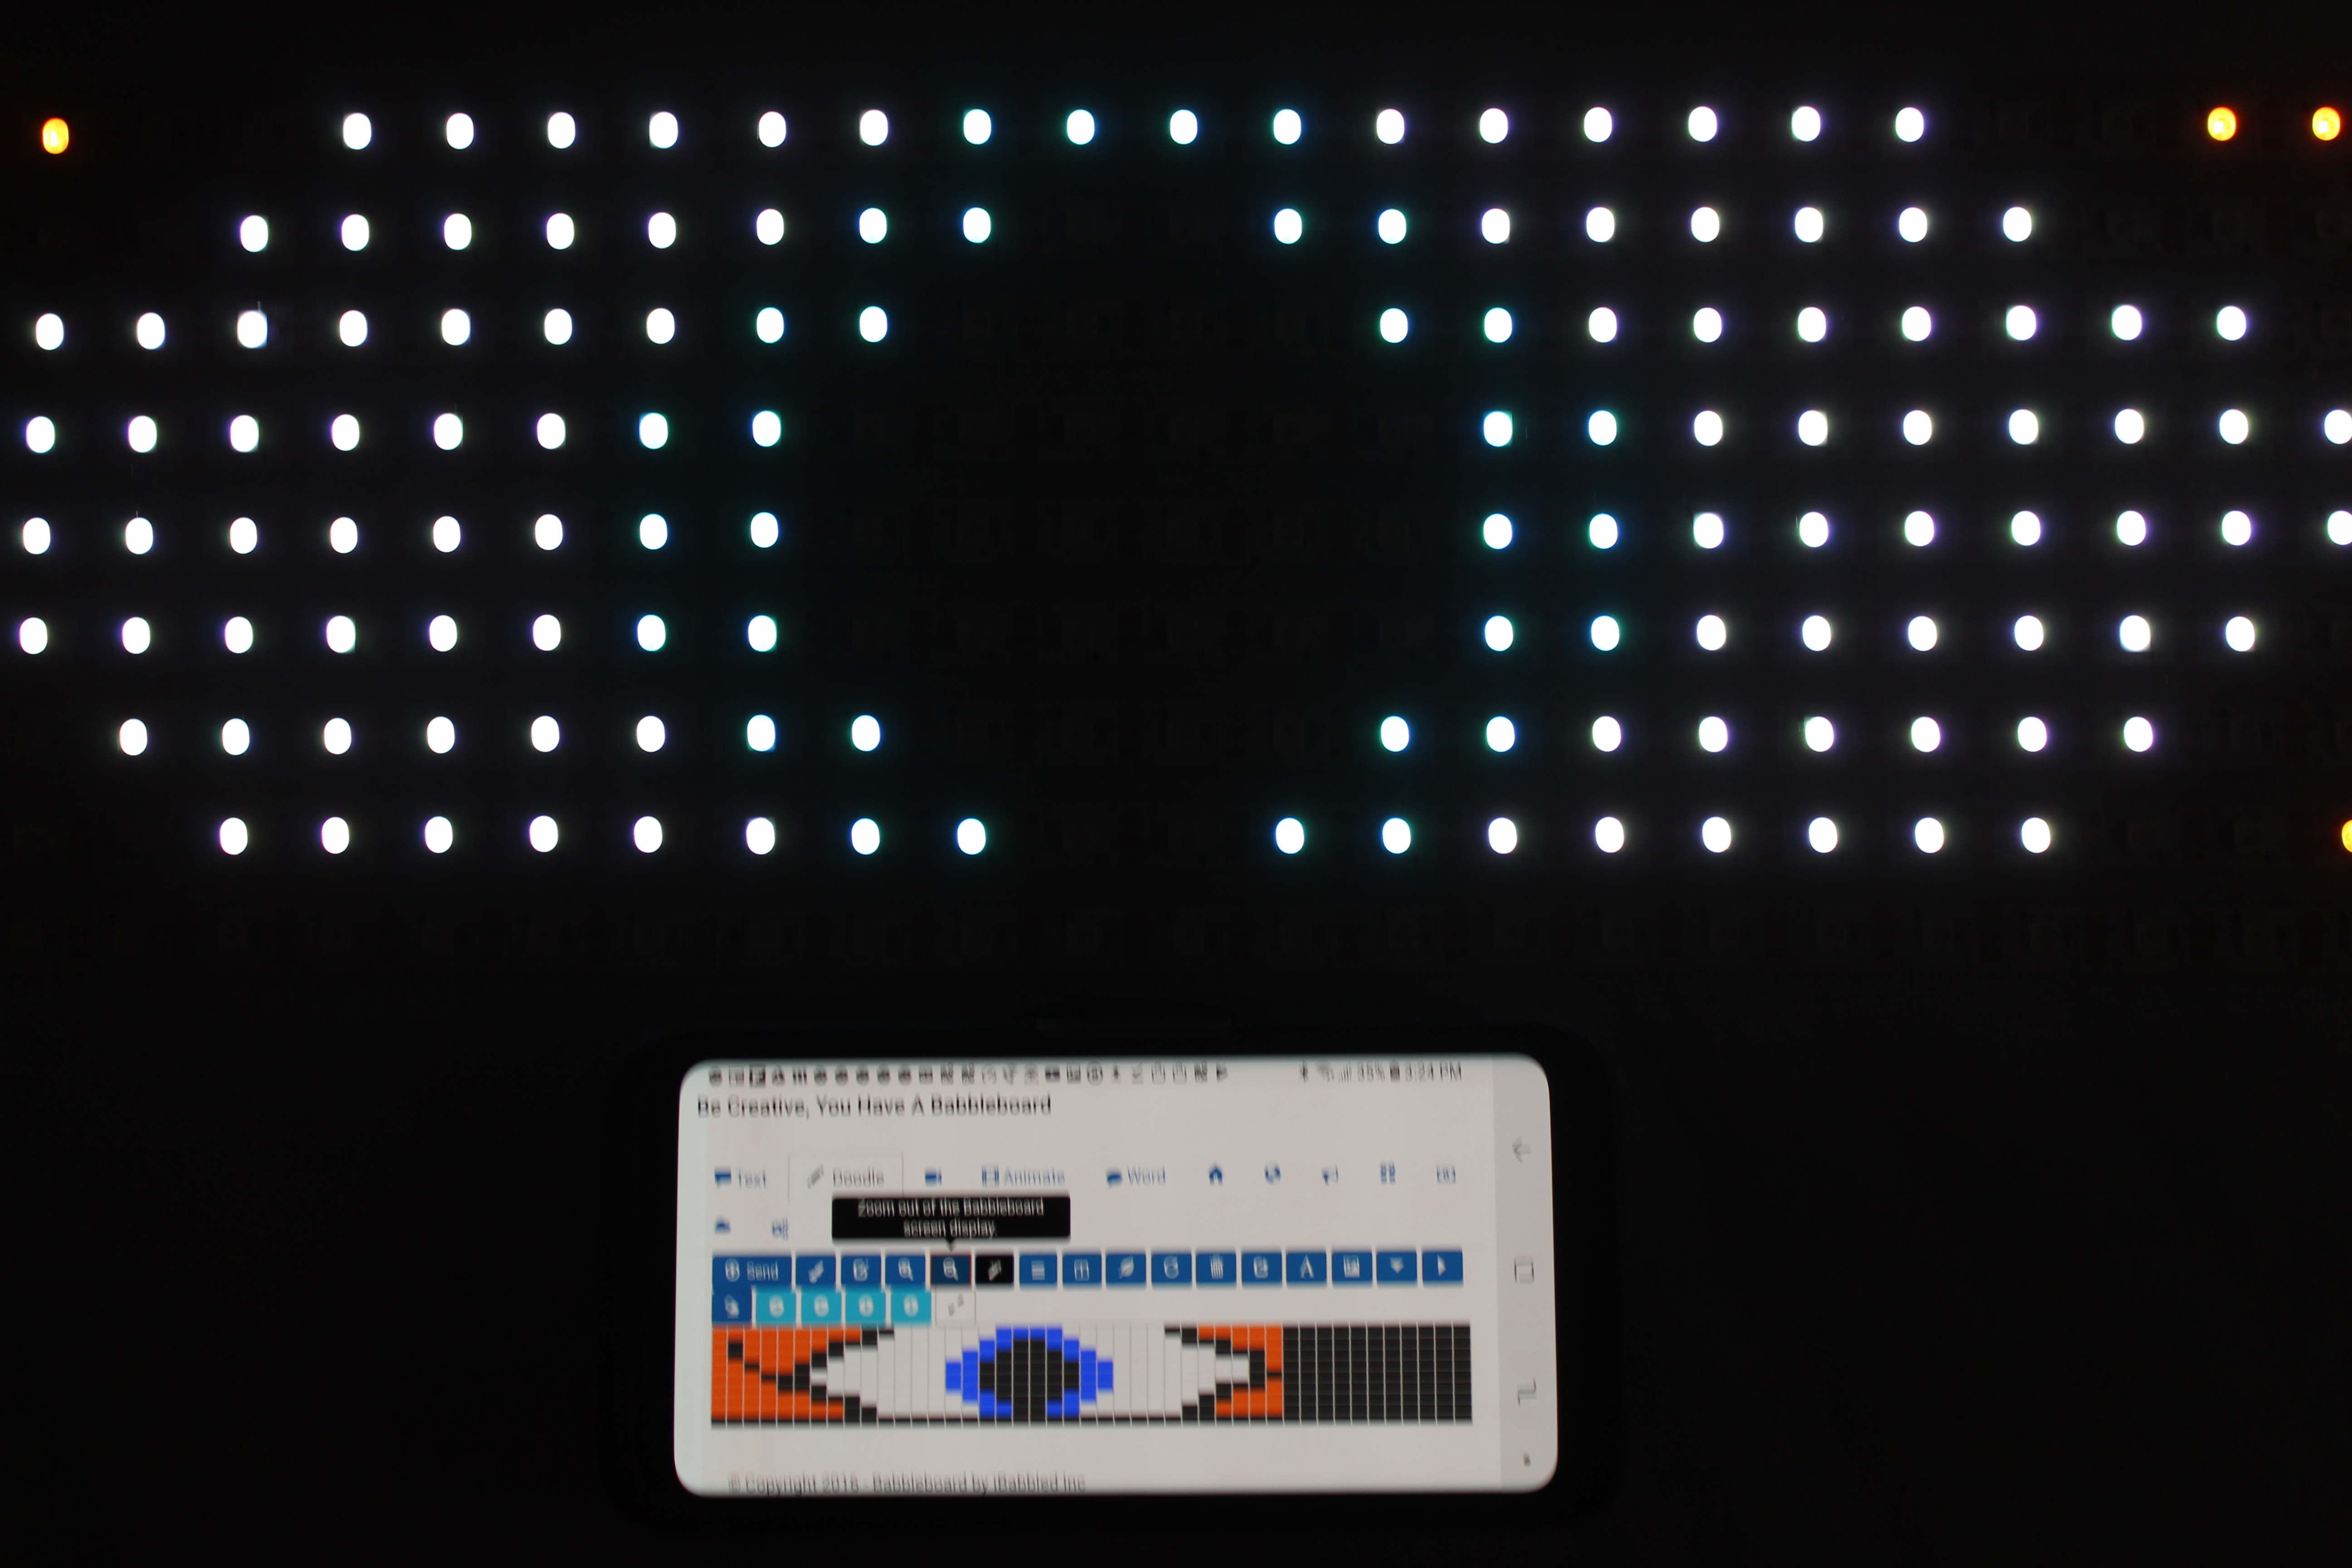 The bitmap demo for the Babbleboard LED IOT Display